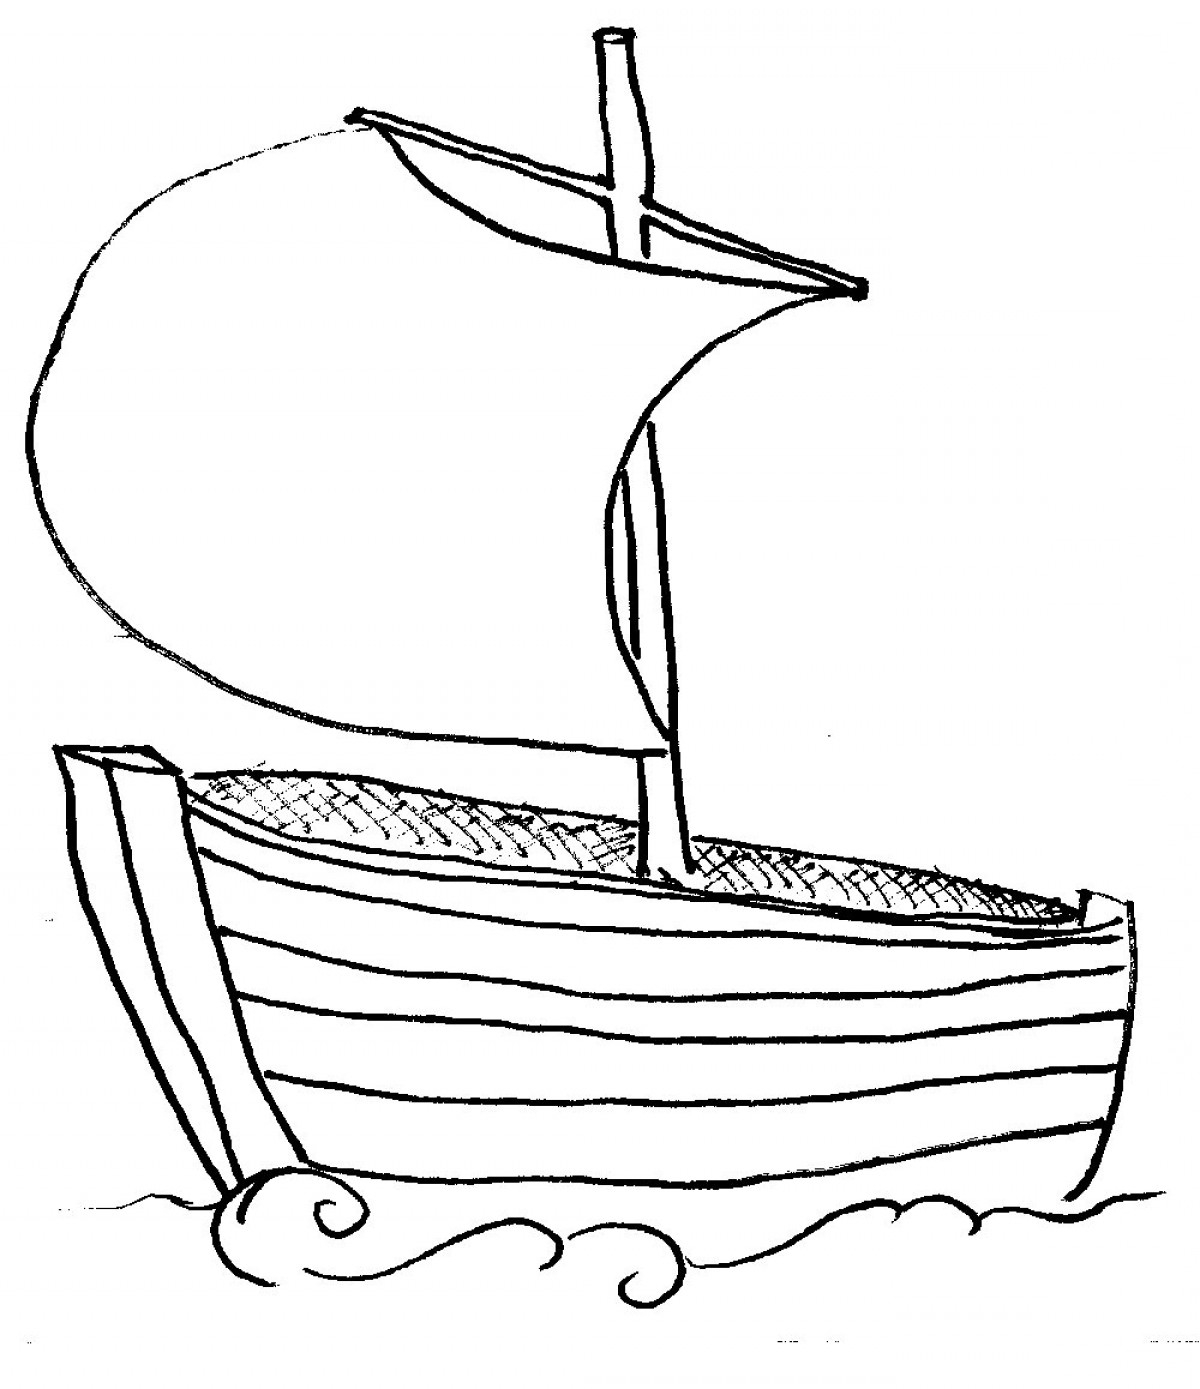 Boating clipart black and white. New boat collection digital